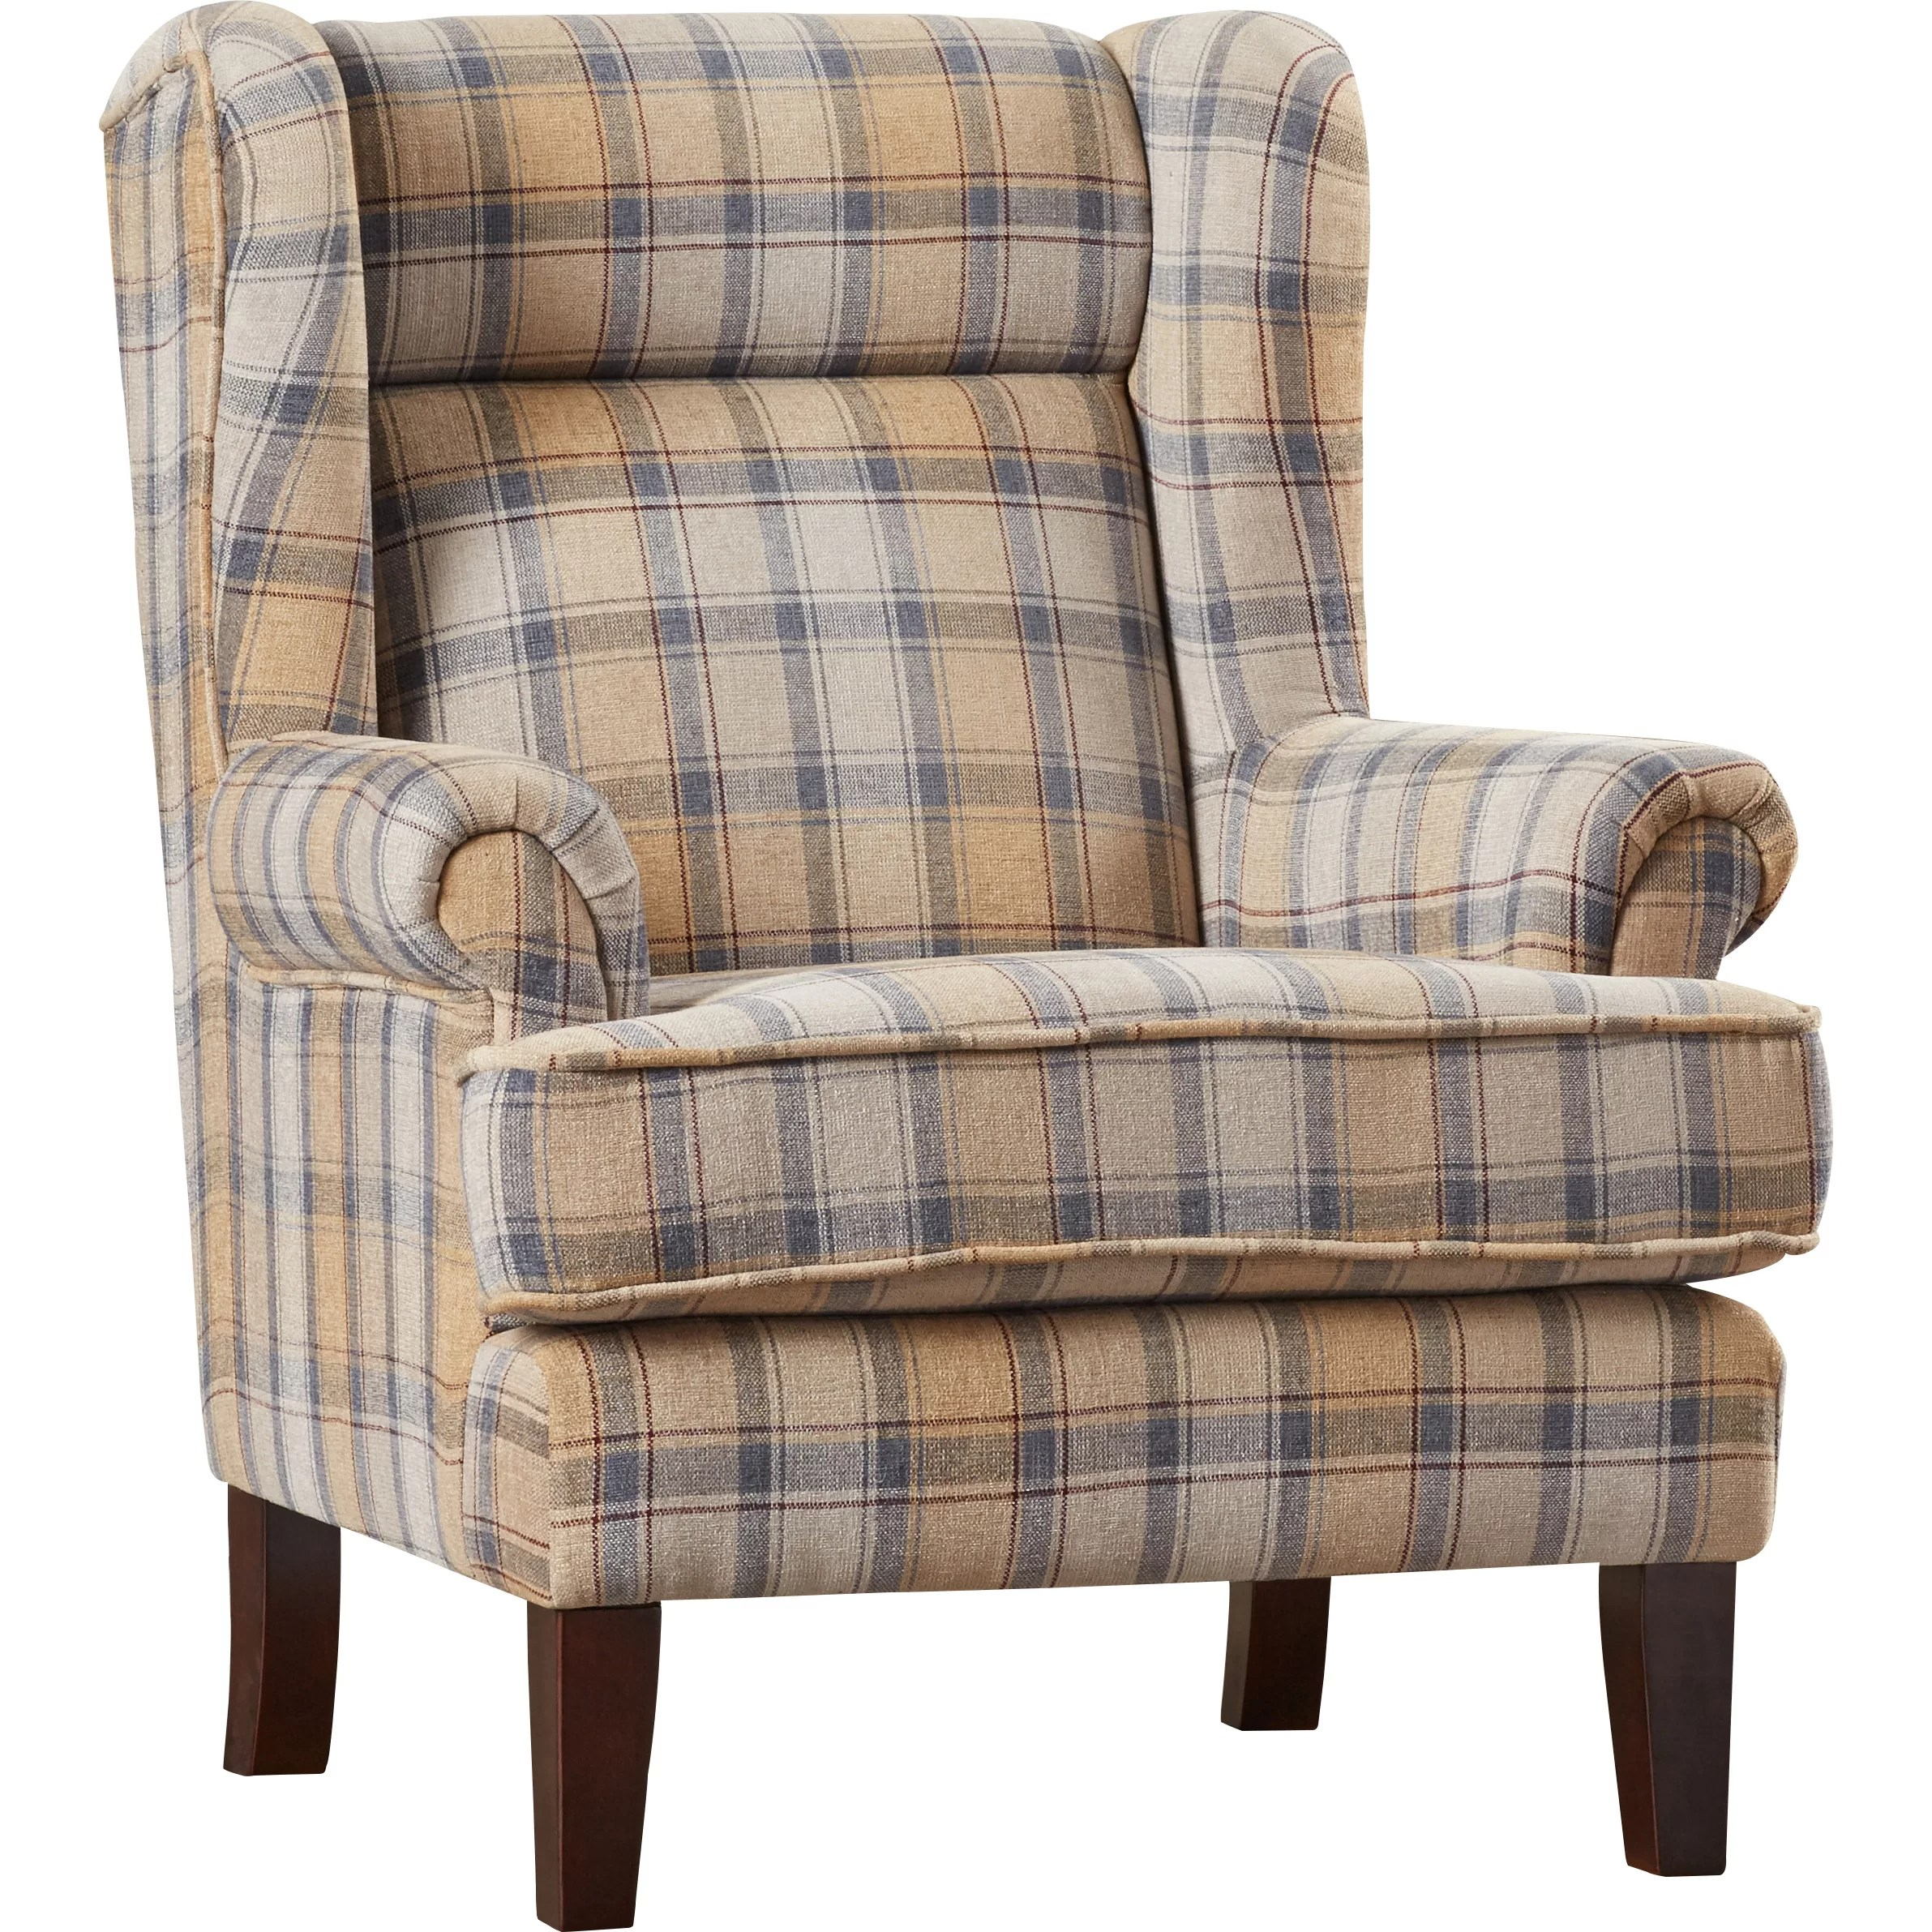 Plaid Chair Darby Home Co Finley Plaid Print Wingback Chair Wayfair